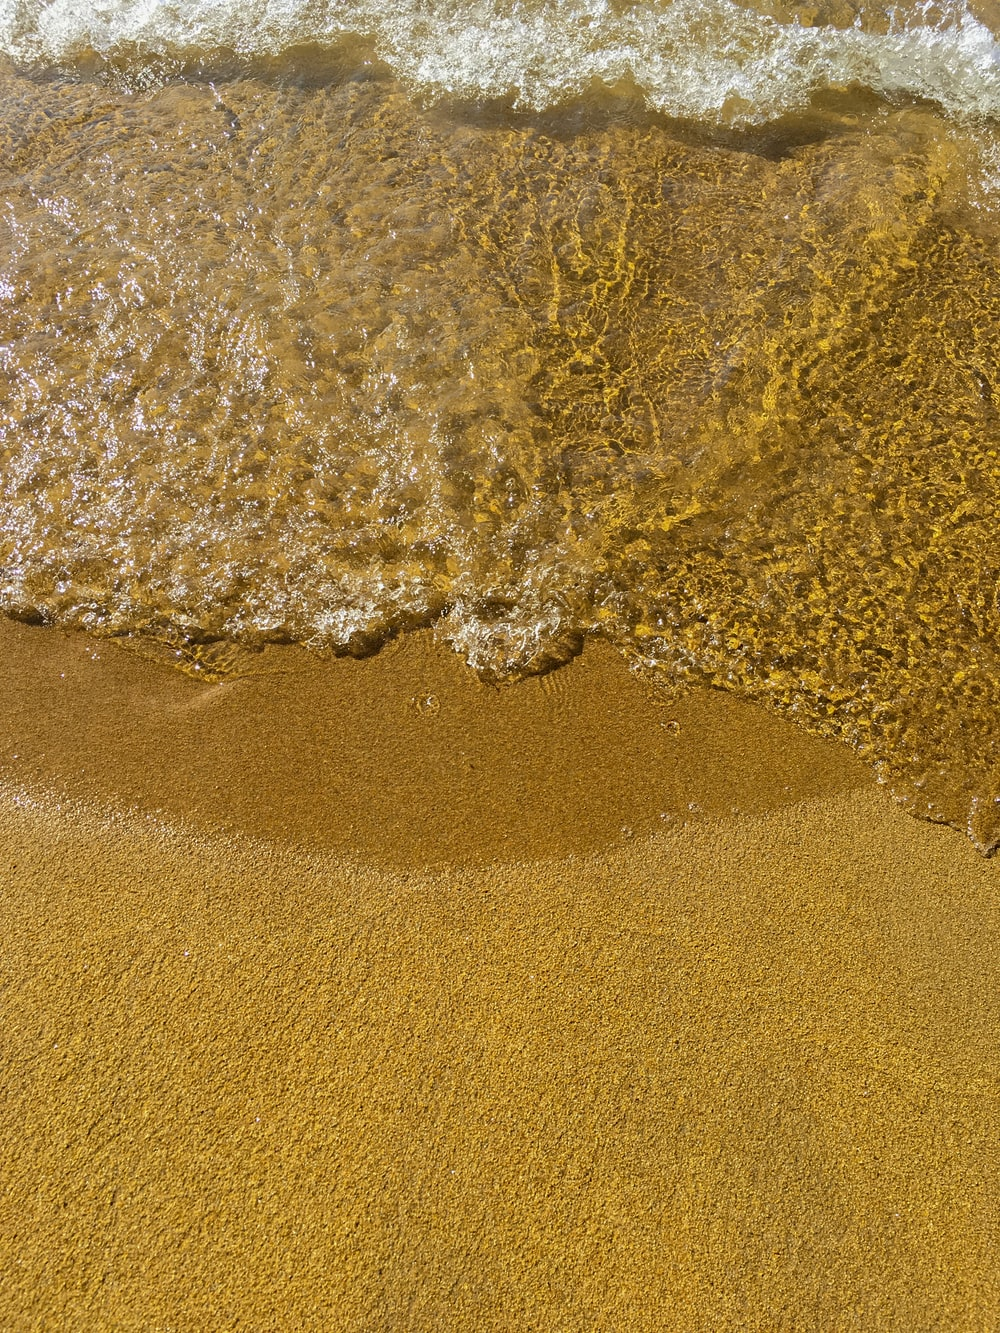 brown sand and body of water